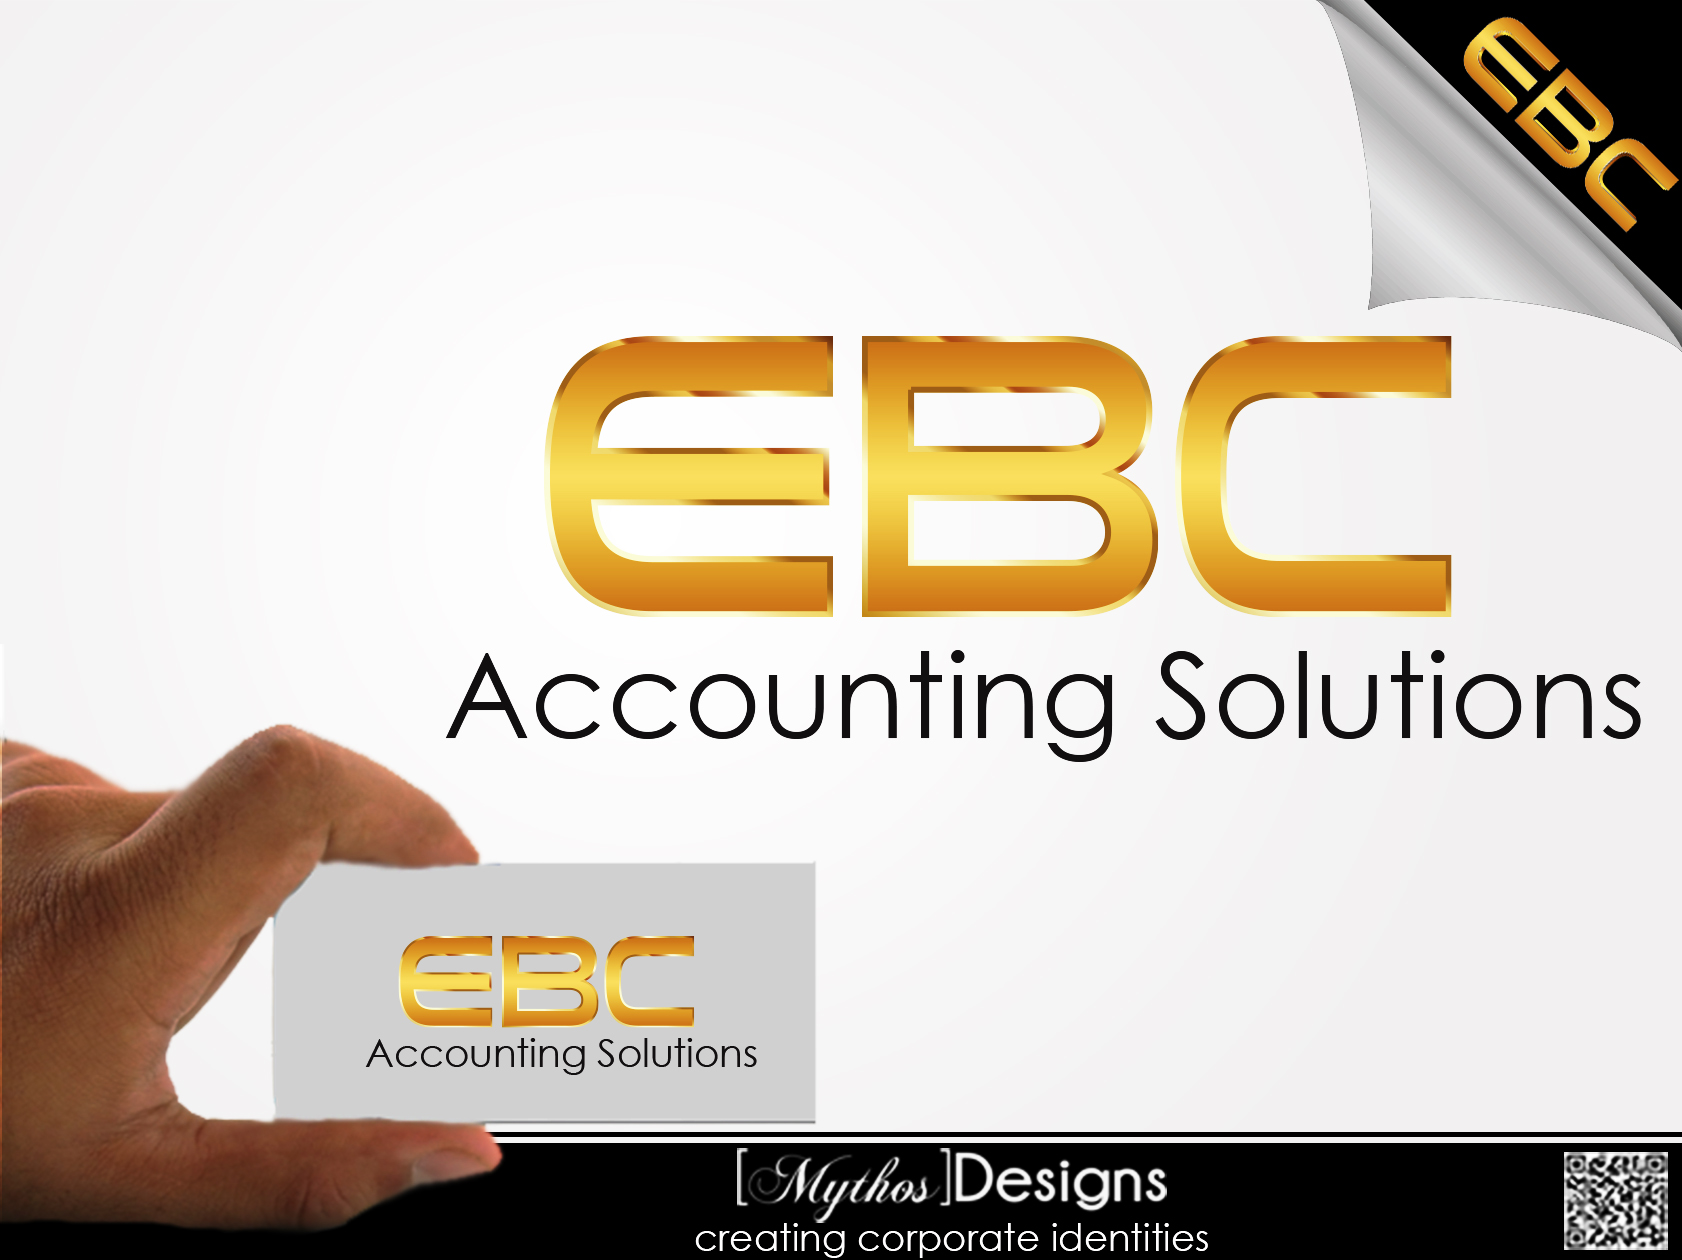 Logo Design by Mythos Designs - Entry No. 208 in the Logo Design Contest New Logo Design for EBC Accounting Solutions.